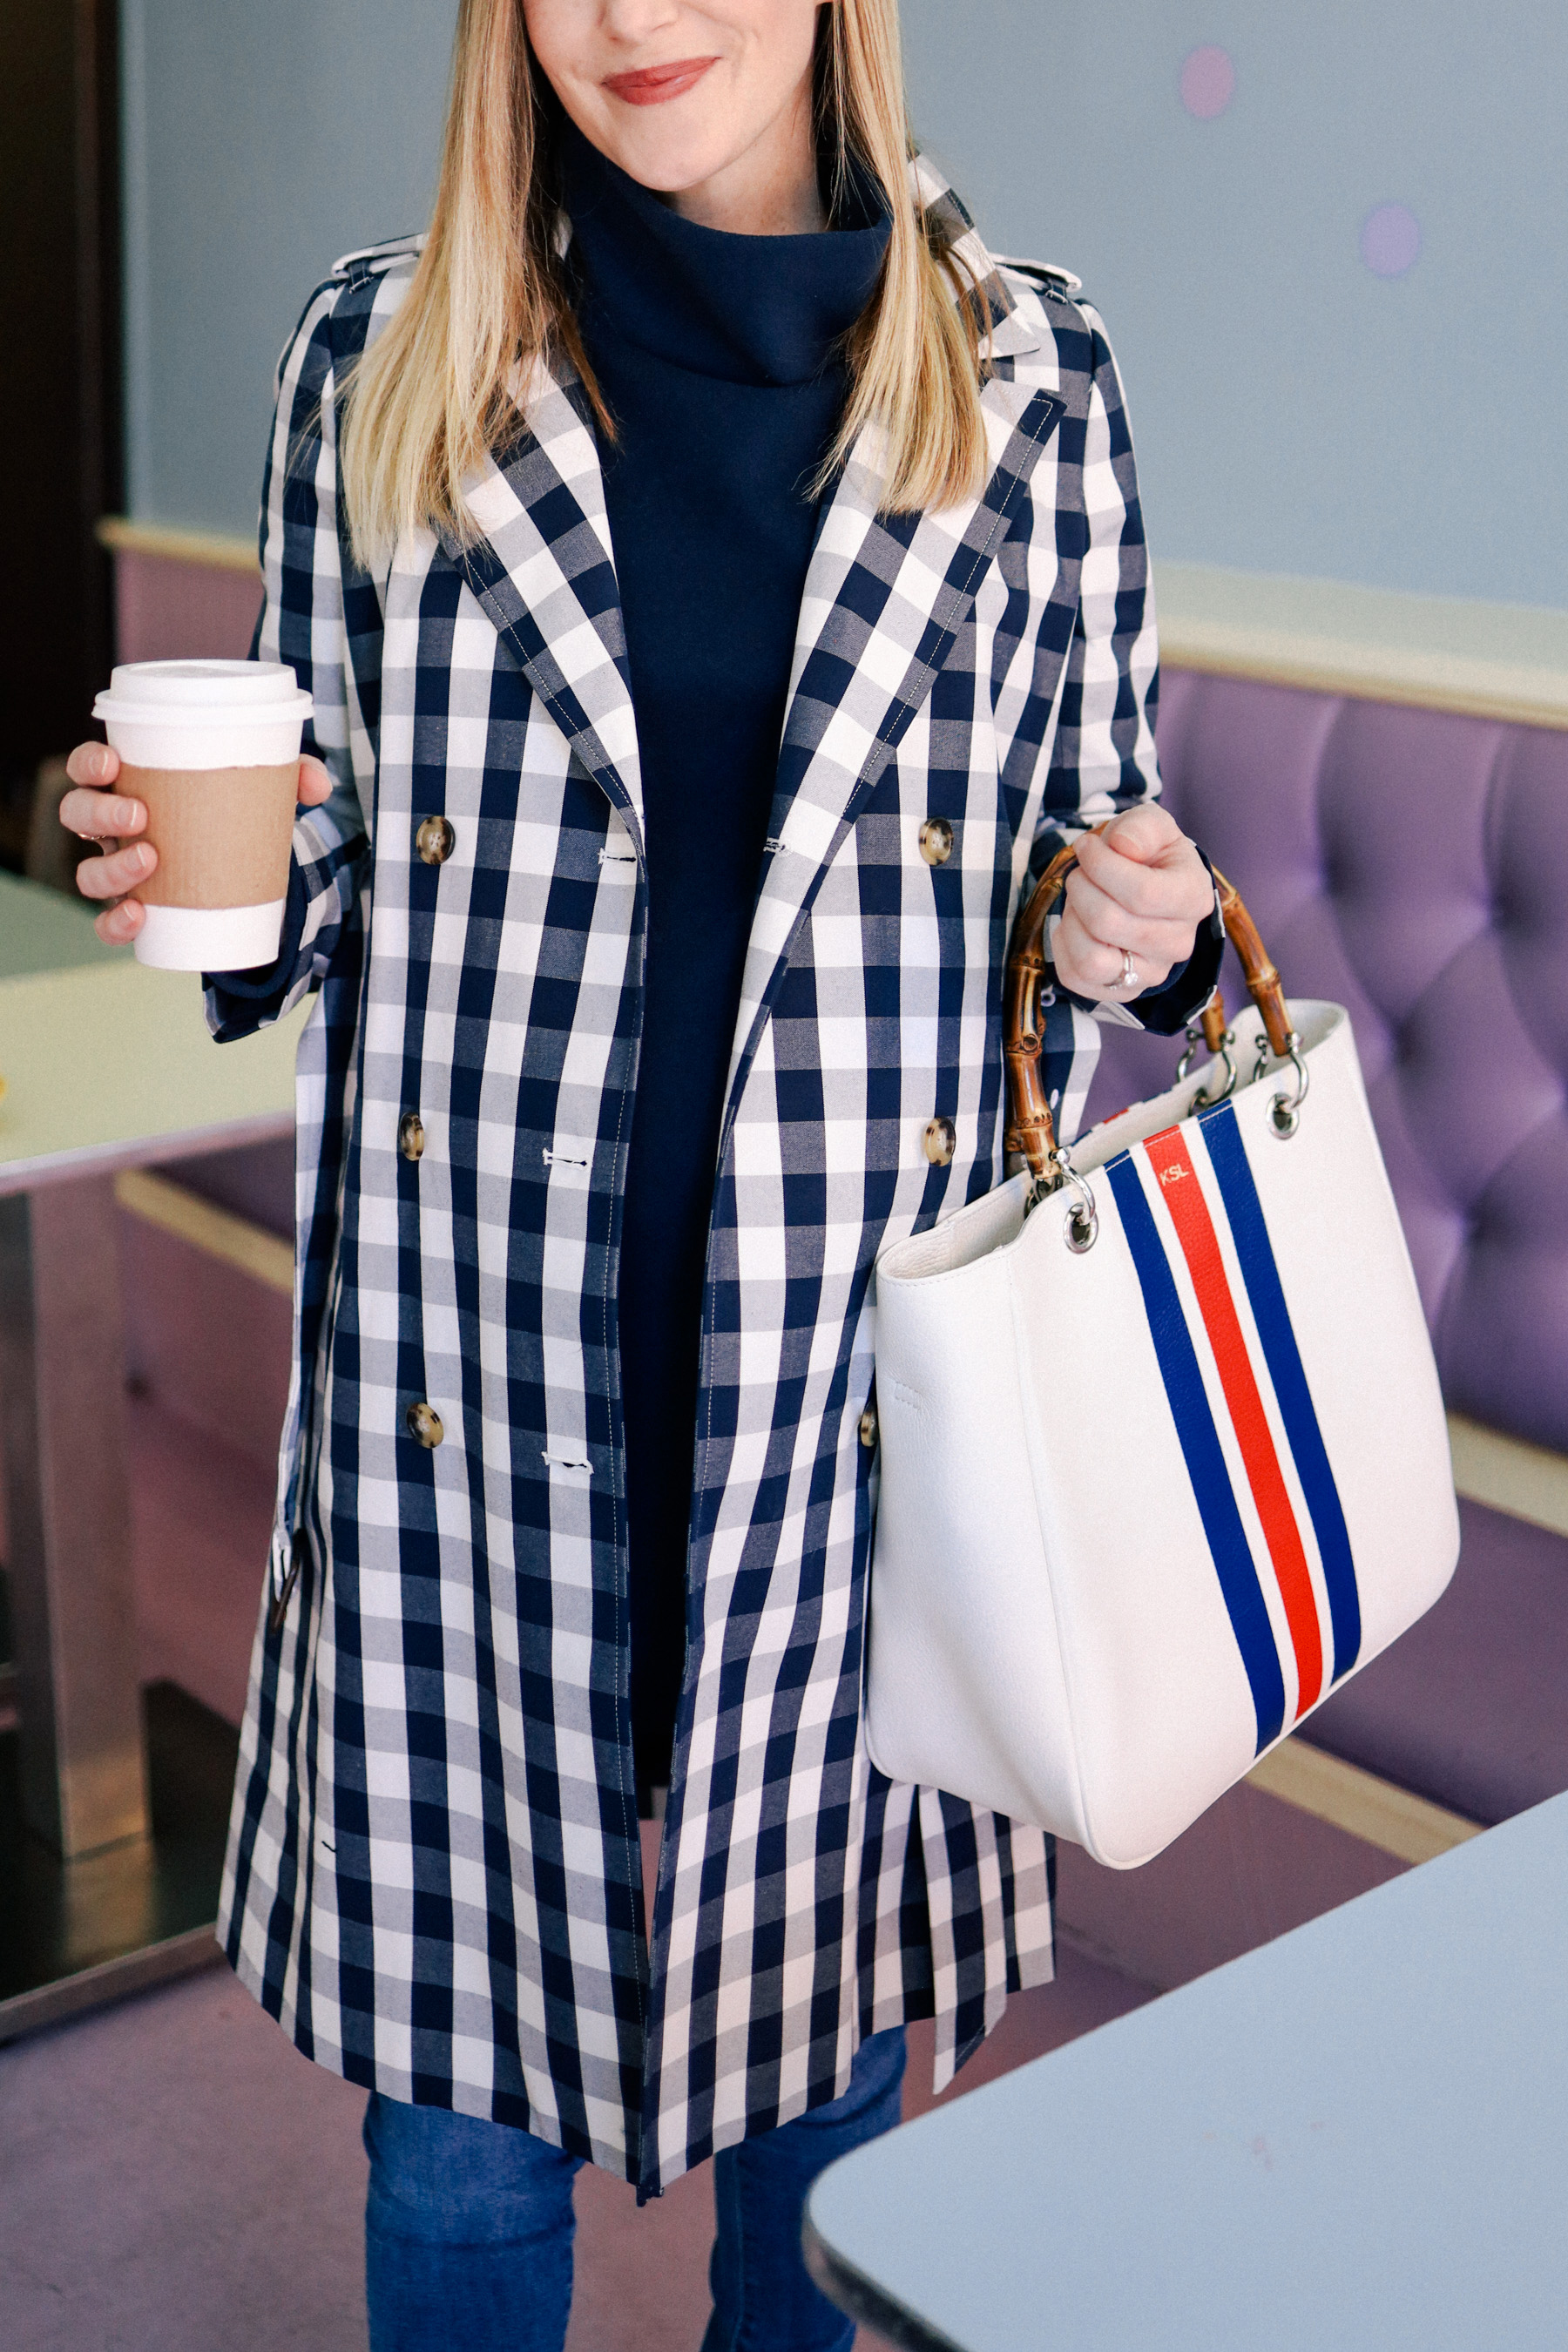 Kelly is wearing a J.Crew Gingham Trench Coat